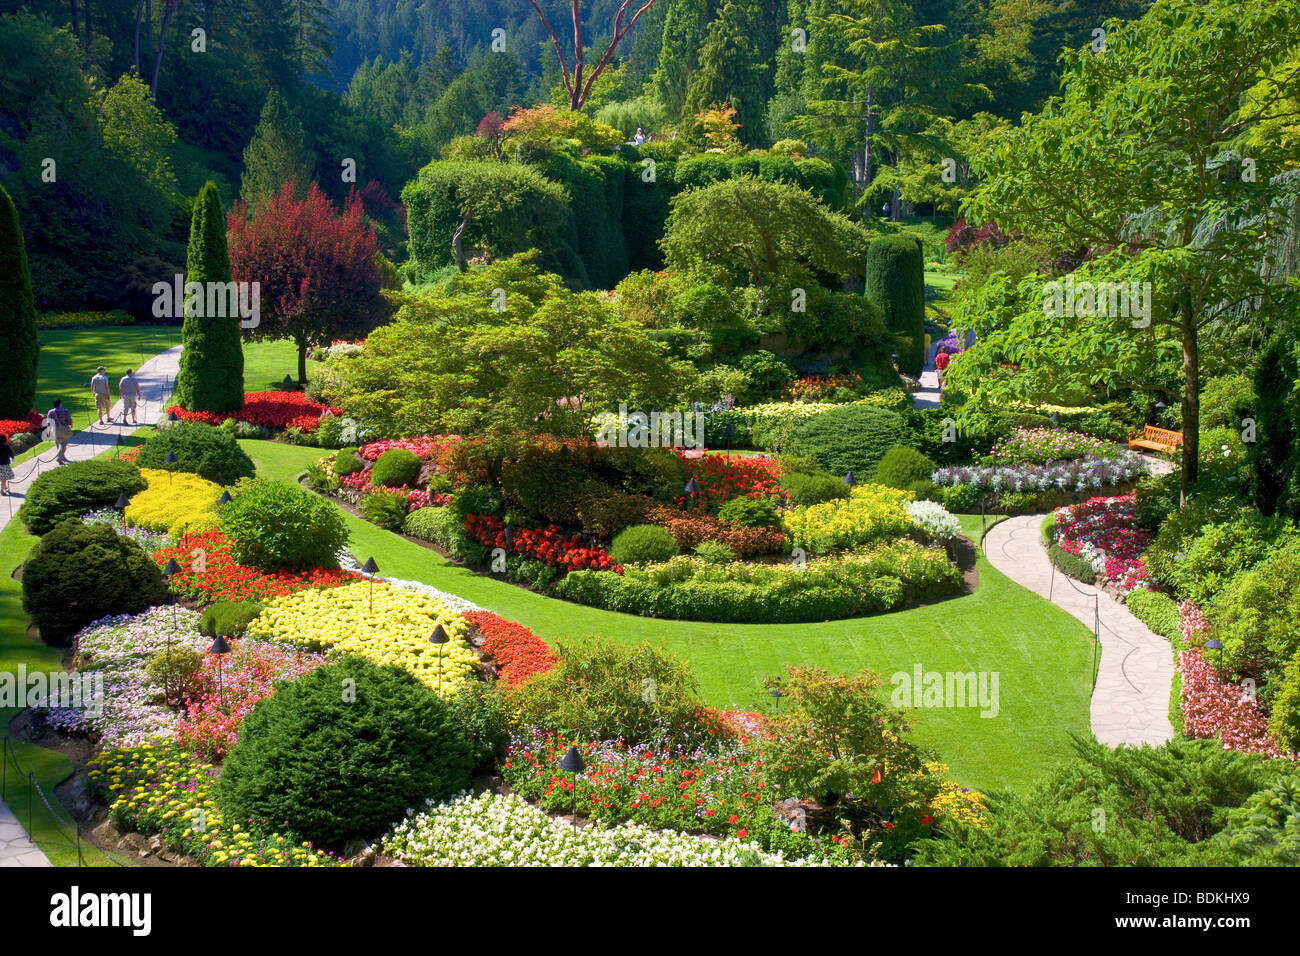 Butchart gardens victoria canada stock photos butchart gardens sunken garden at the butchart gardens victoria vancouver island british columbia canada thecheapjerseys Images